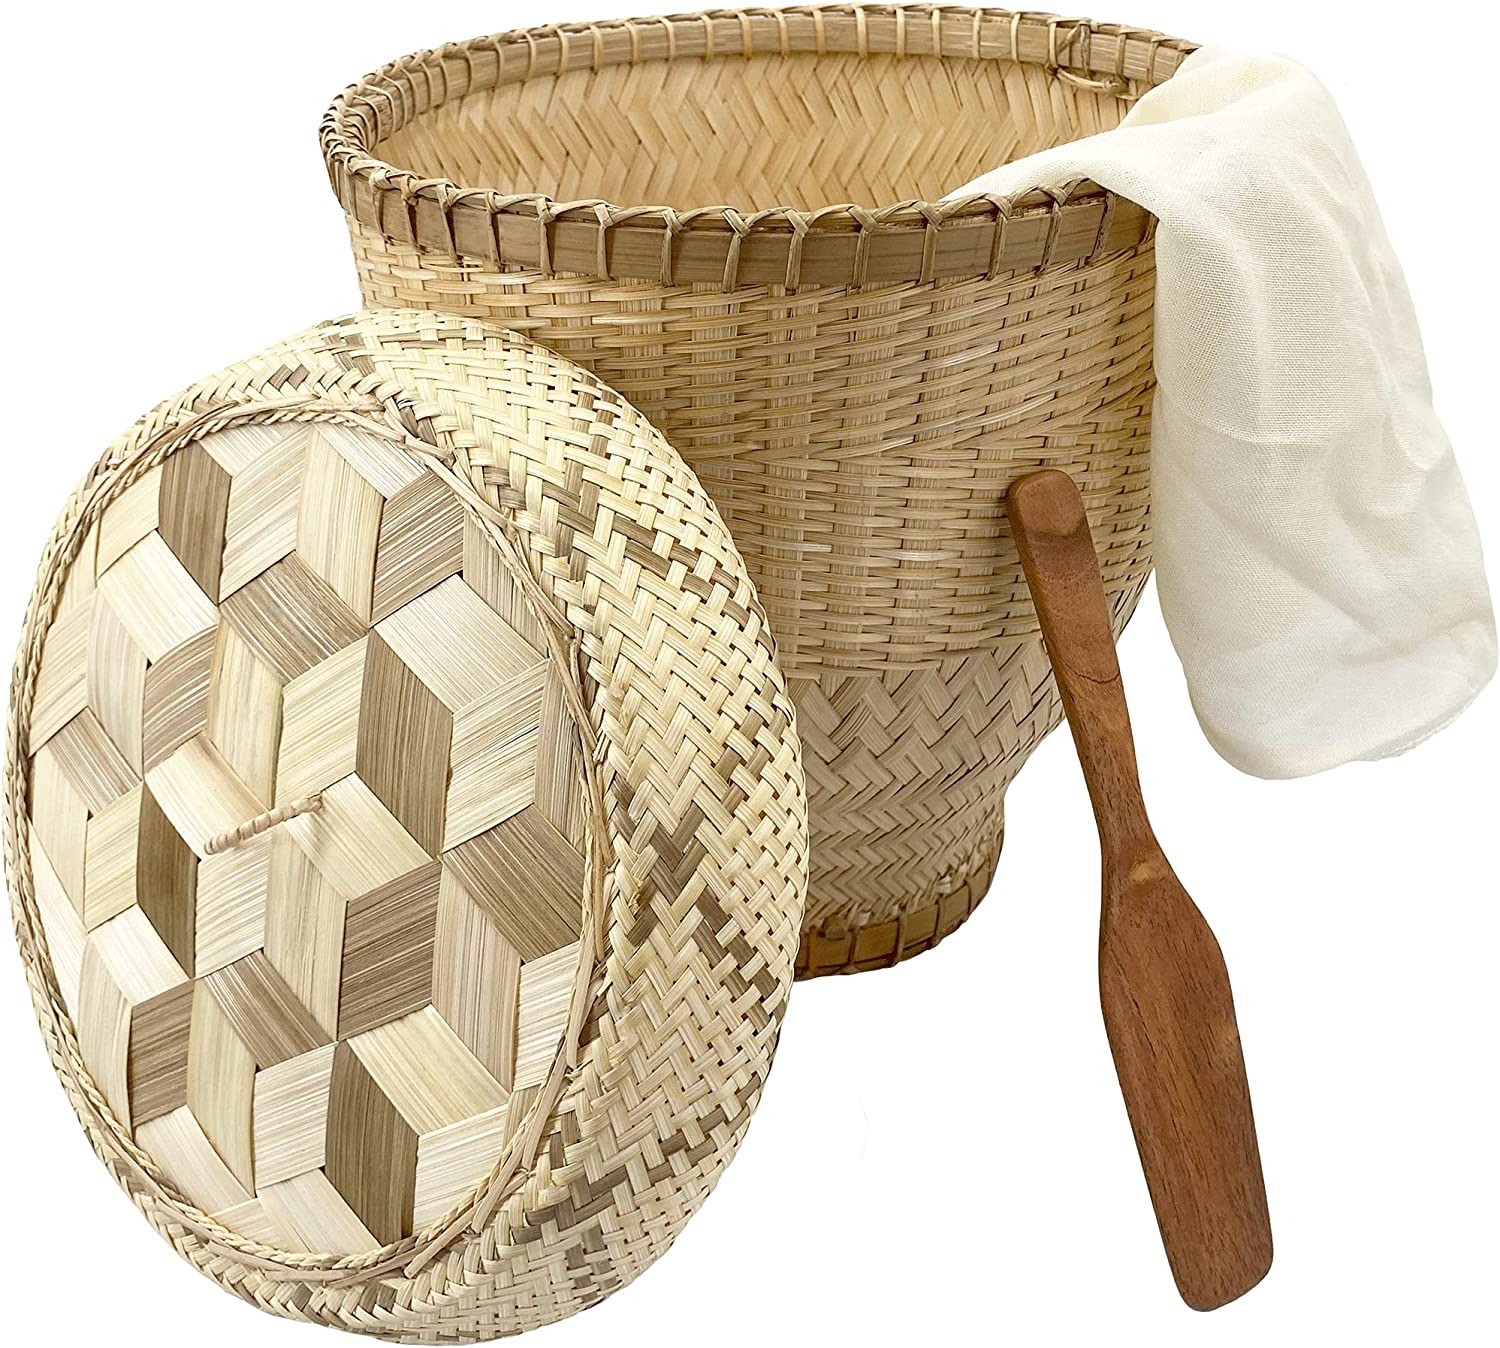 """Panwa Handmade 100% Natural Thai Bamboo Sticky Rice """"Professional Steamer Basket Set"""" Large, 11 inch Restaurant Grade, Wicker Woven Lid 24'' Cheesecloth Filter, and Wooden Spoon"""